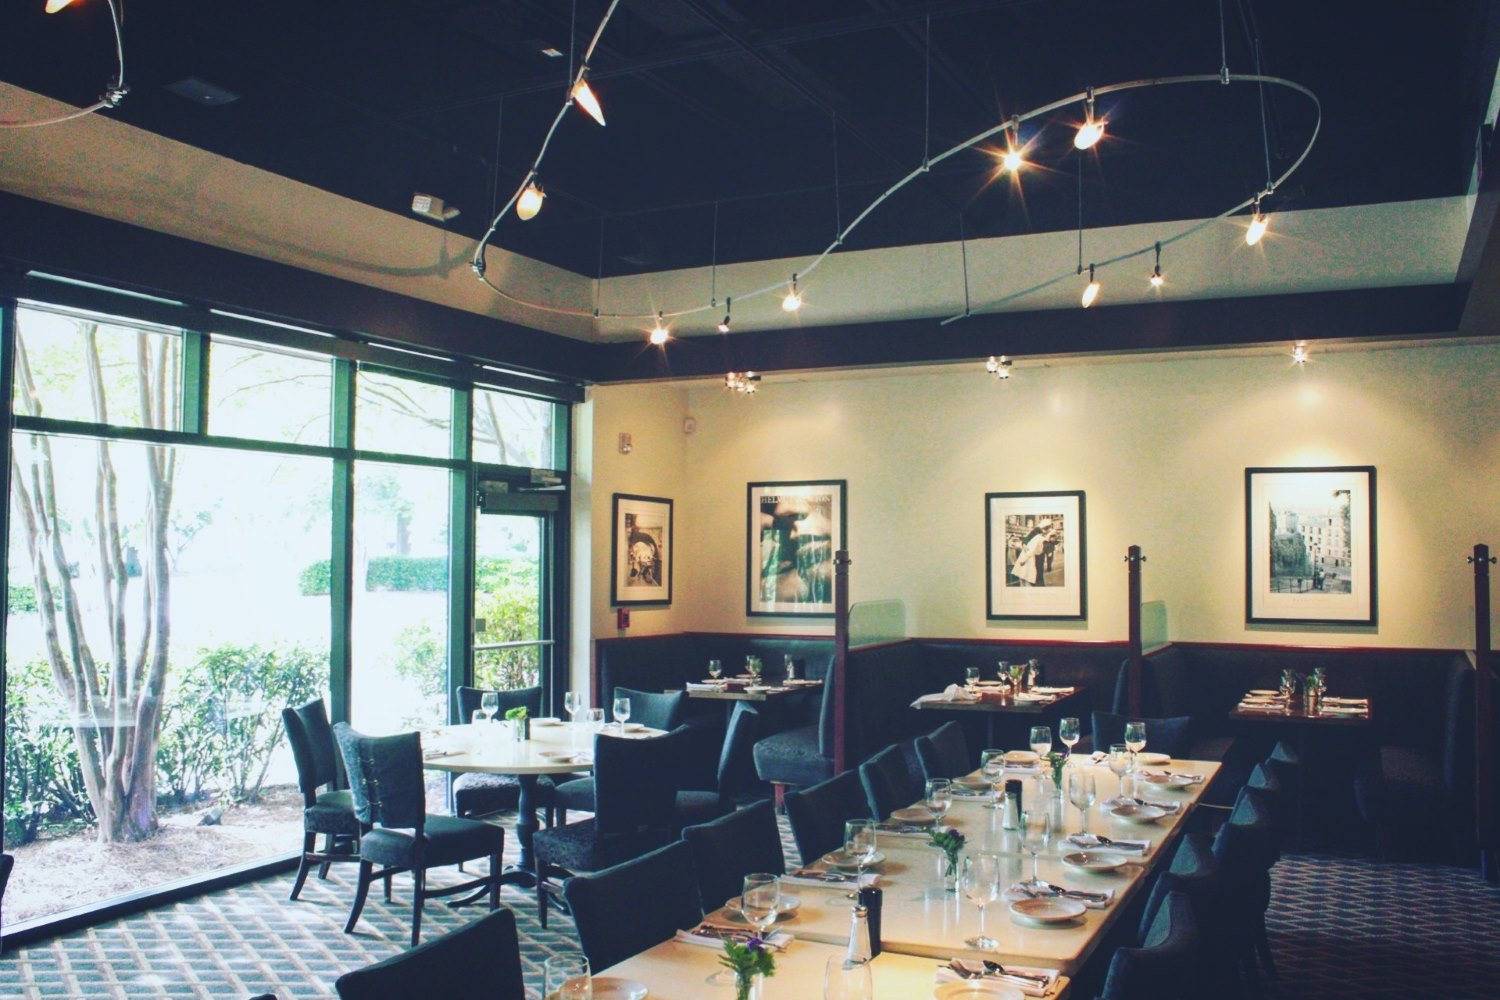 Private Dining Room Group Event Hours U0026 Seating In Cary : We Have Very  Limited Times During The Day To Reserve Private Dining Spaces.